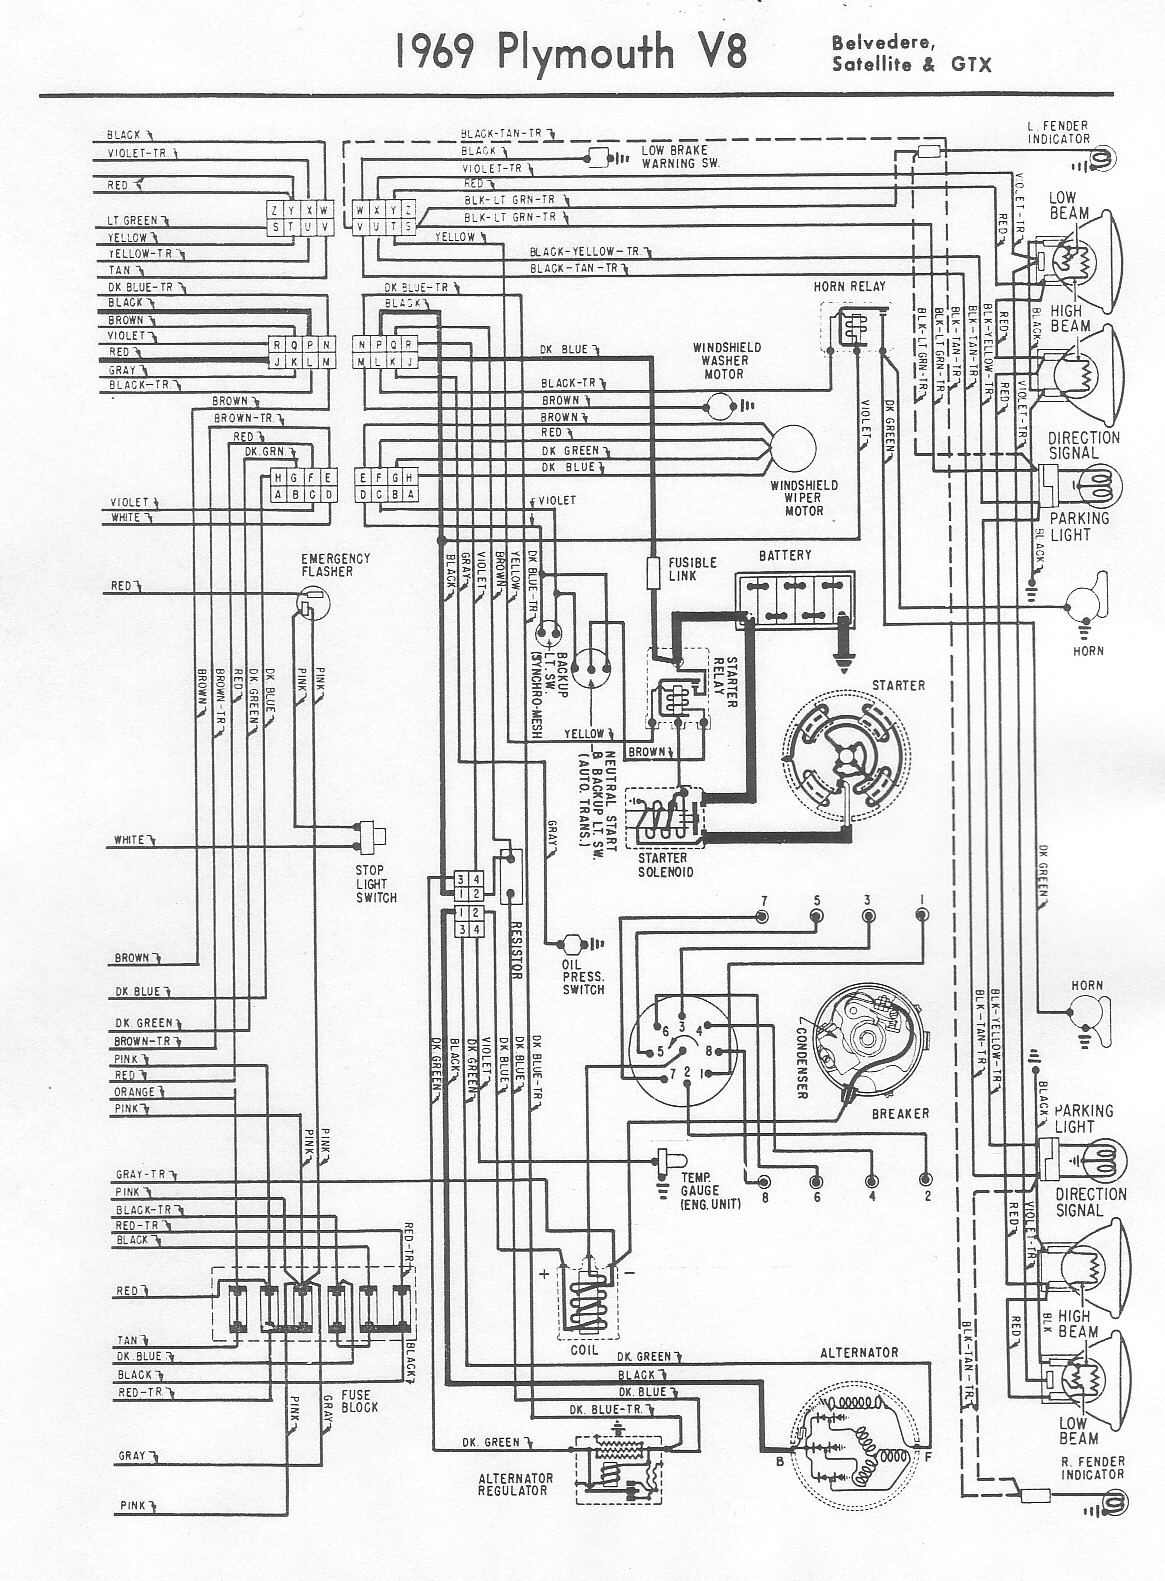 Astonishing 69 Charger Headlight Wiring Diagram Wiring Diagram Data Schema Wiring 101 Capemaxxcnl